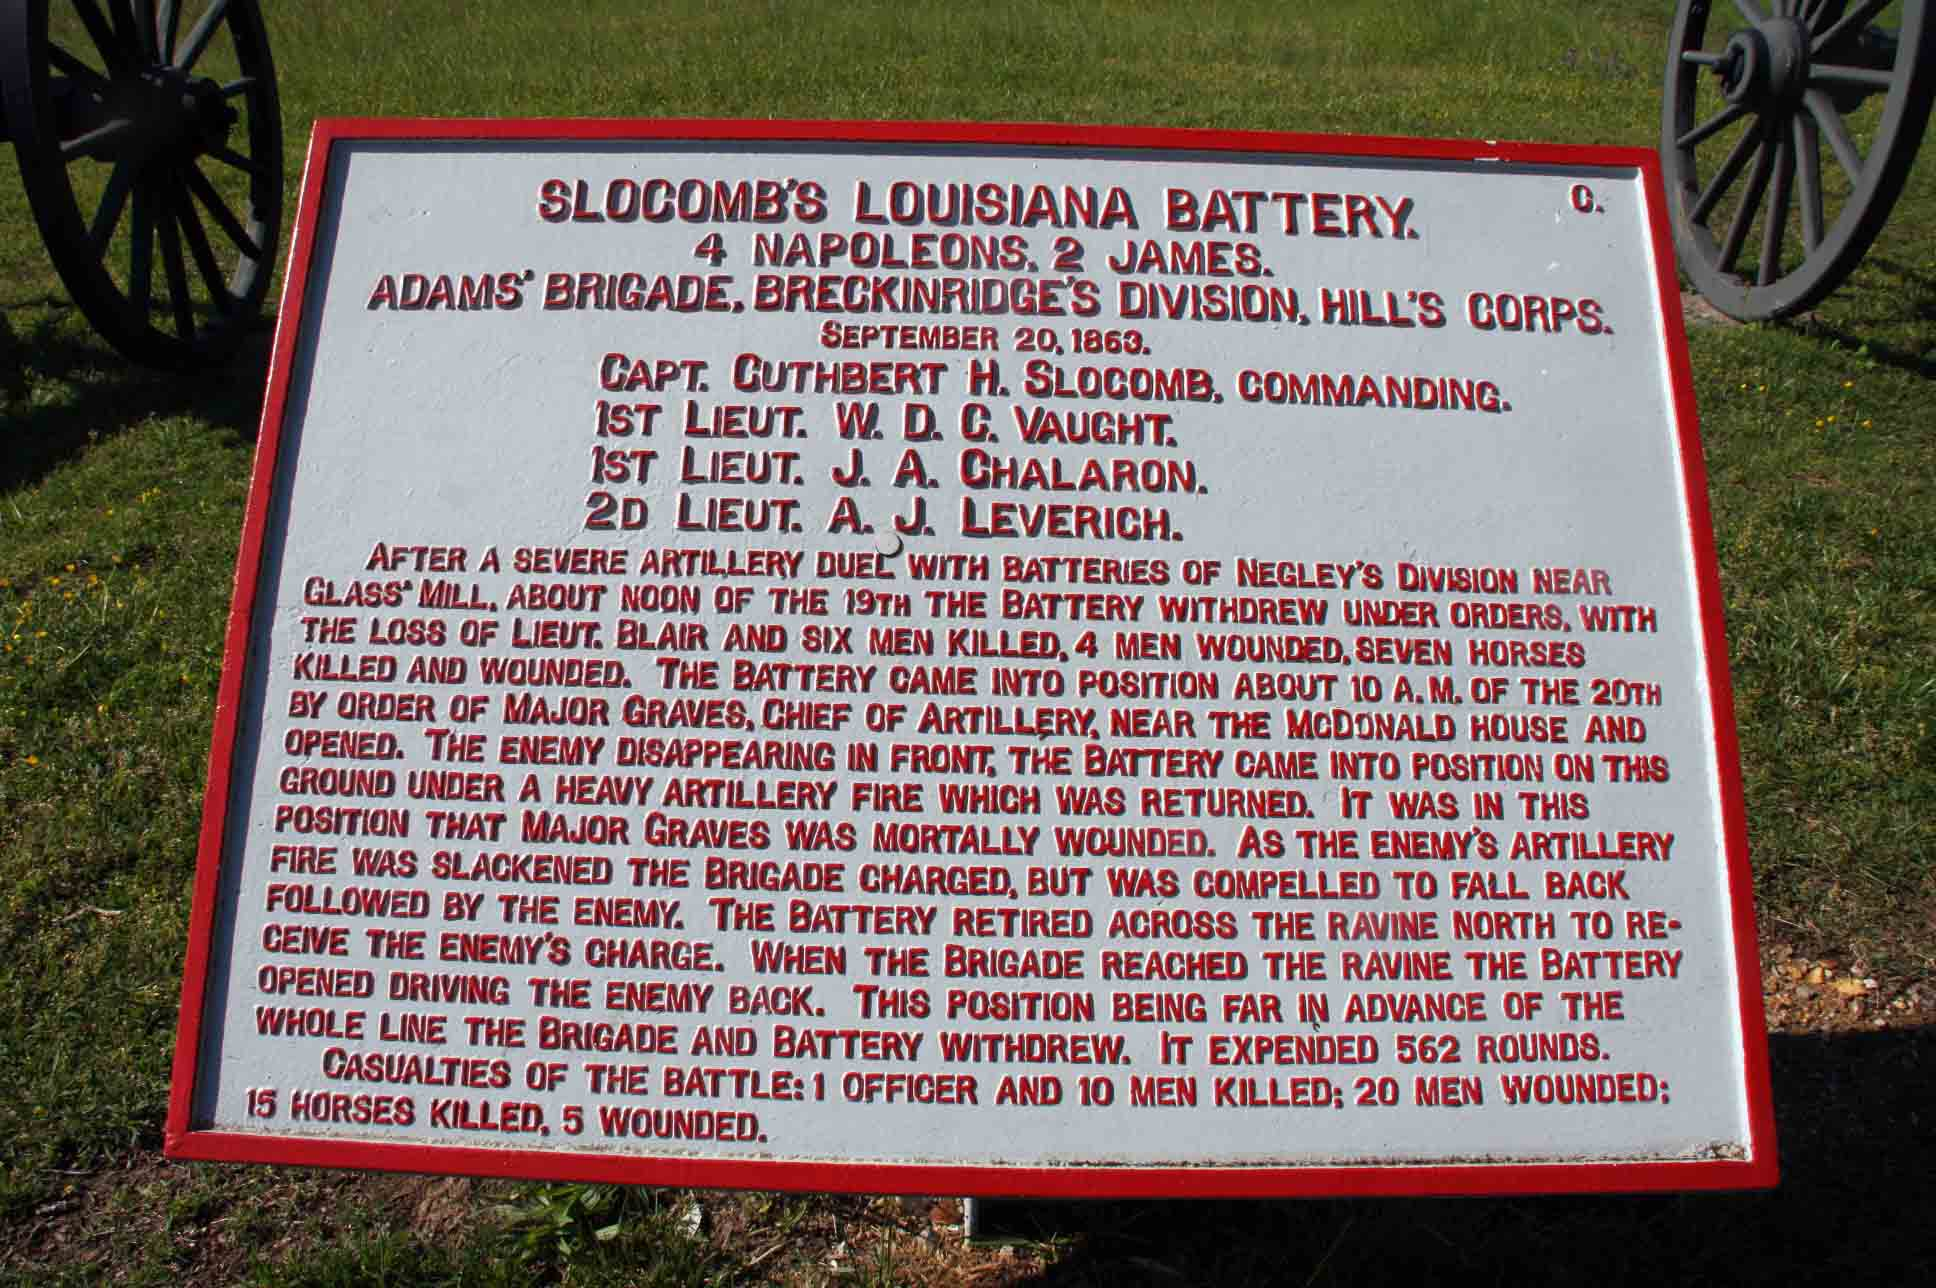 Slocomb's Louisiana Battery Plaque, click photo to enlarge.